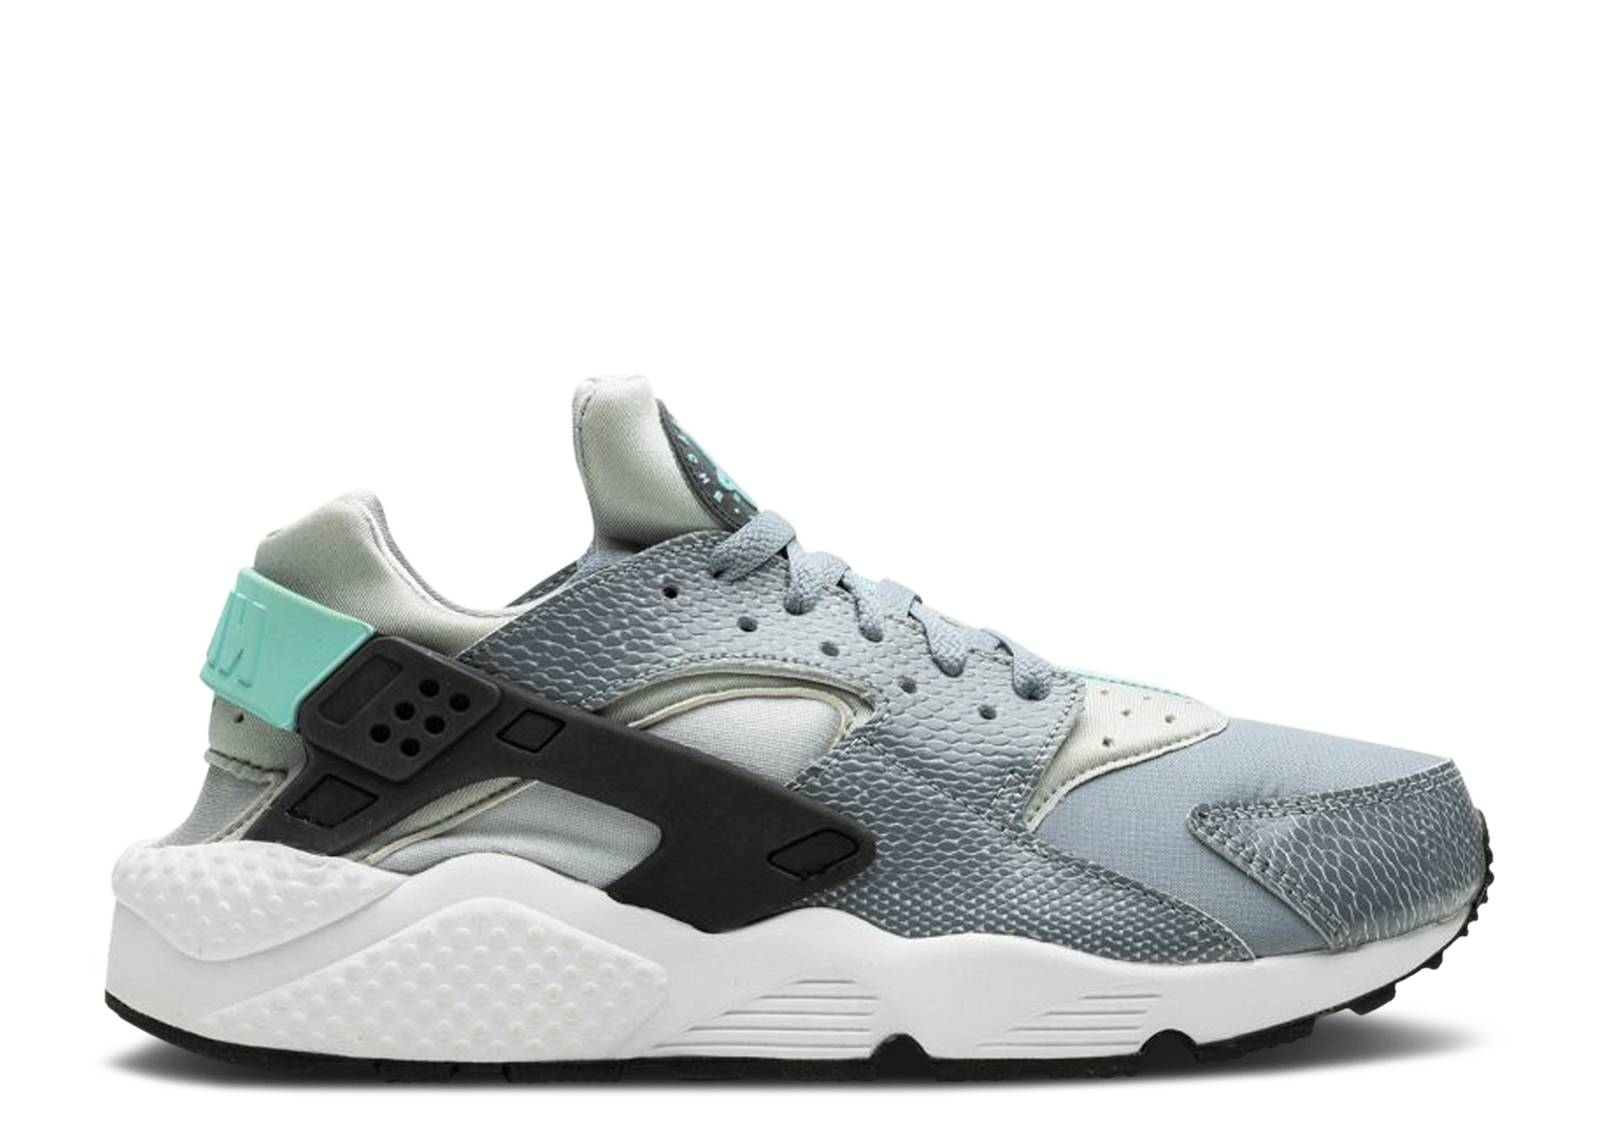 SILVER Nike Air huaraches UK 6.5